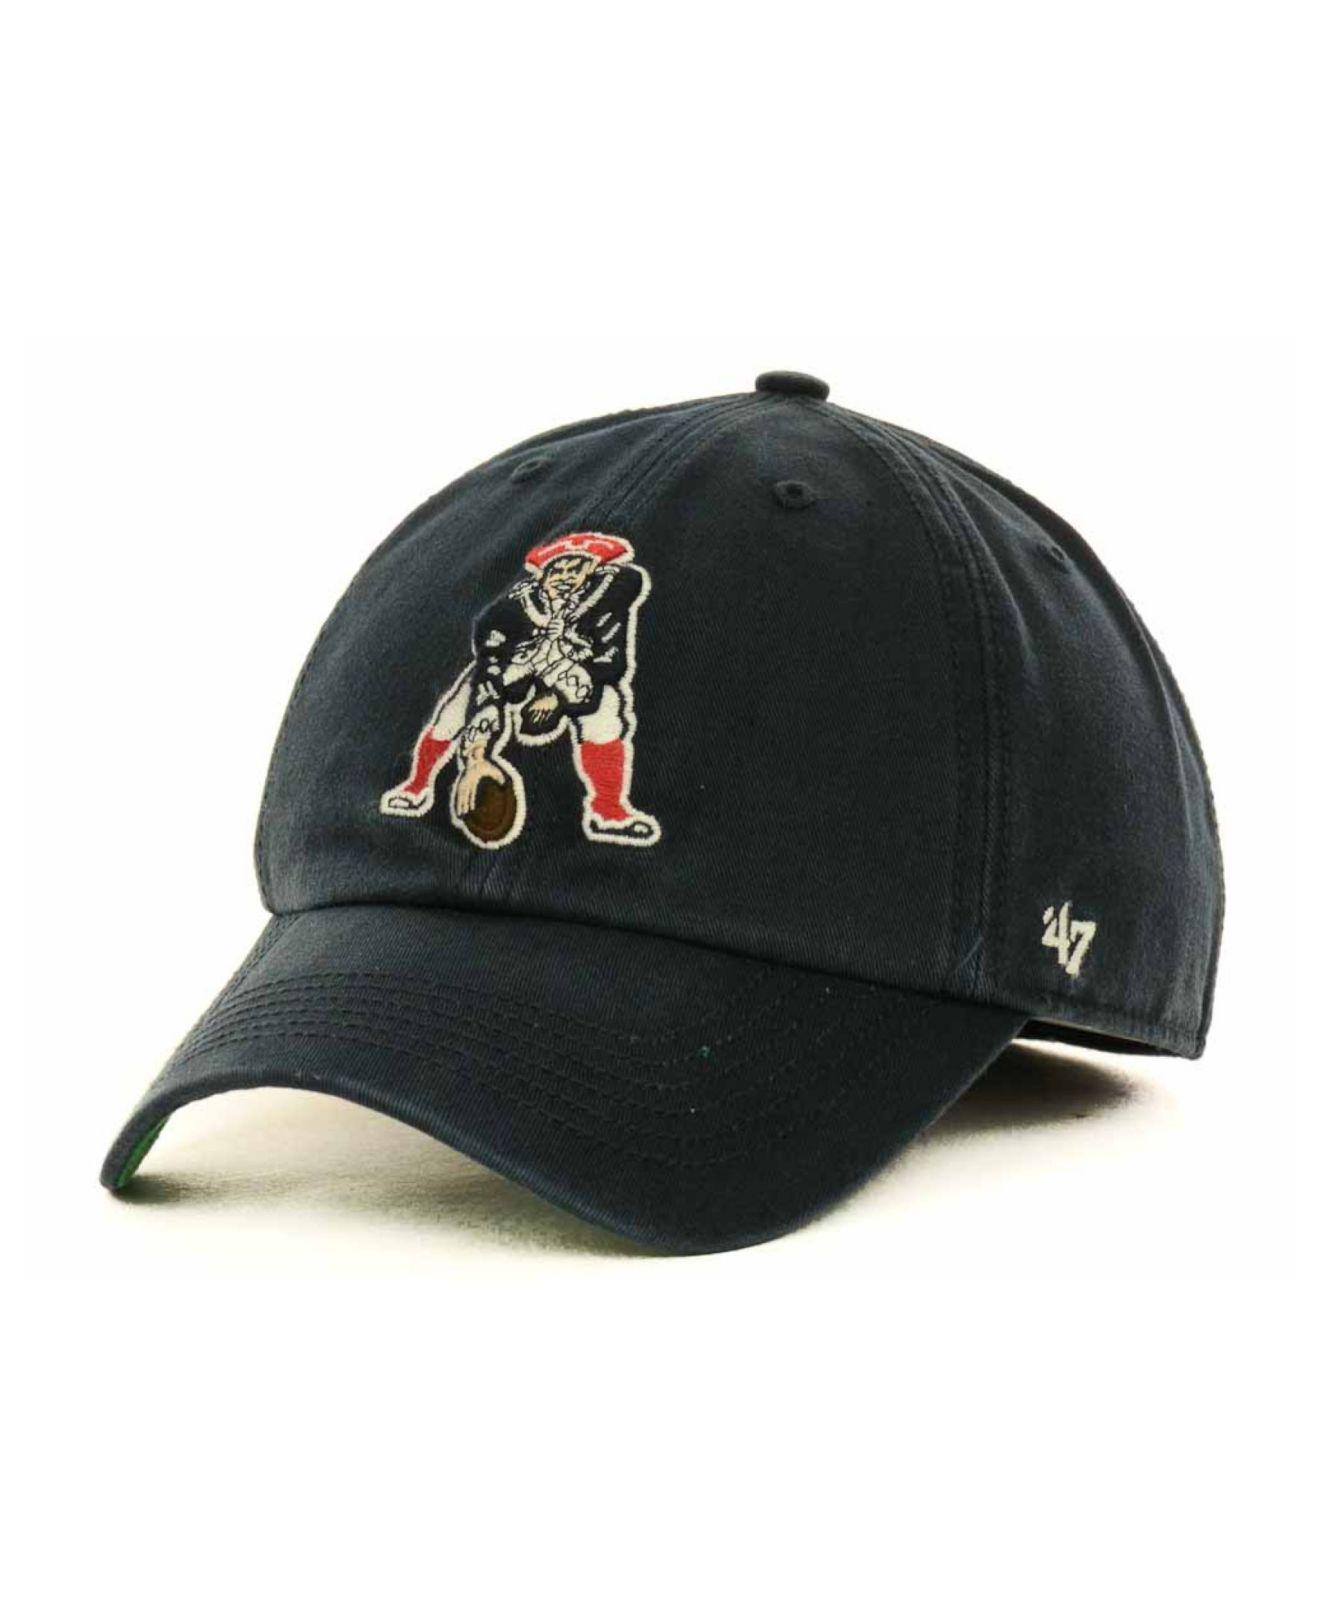 59d143bb644 Lyst - 47 Brand New England Patriots Franchise Hat in Black for Men